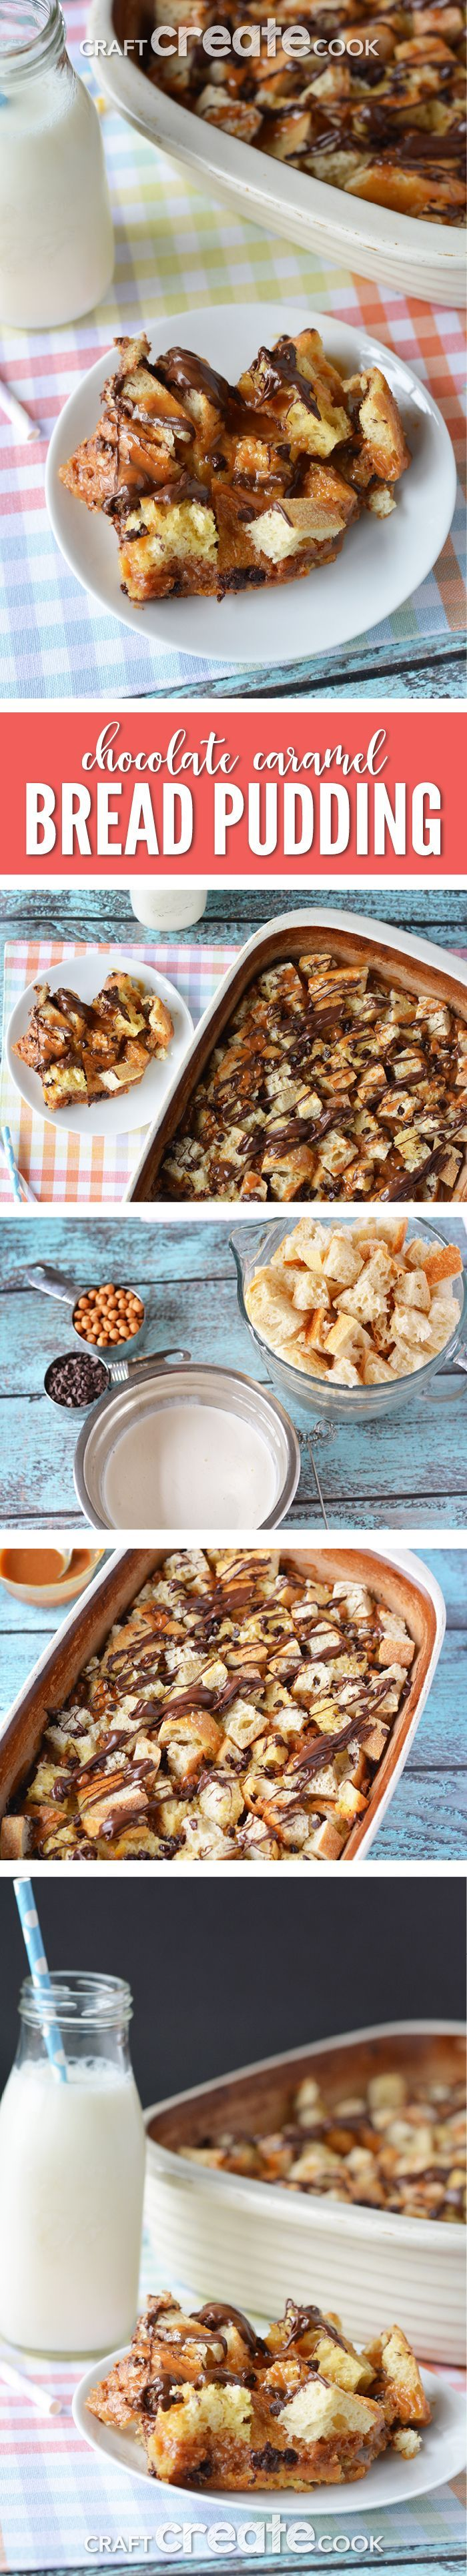 You'll love this modern chocolate caramel spin on a traditional bread pudding recipe. via @CraftCreatCook1